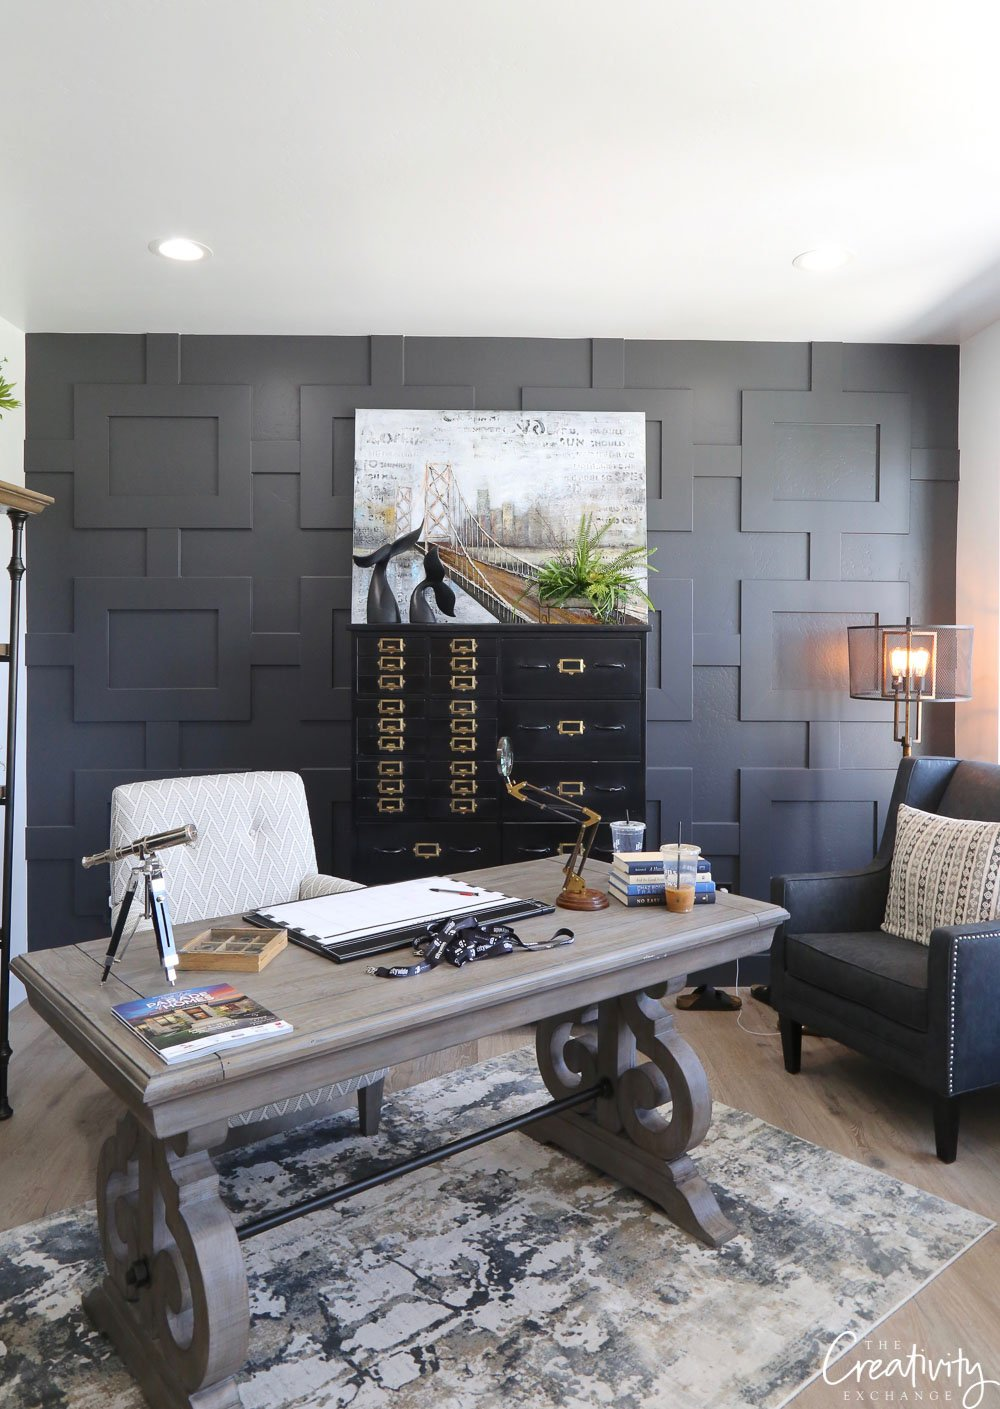 Wall color is Benjamin Moore Kendall Charcoal